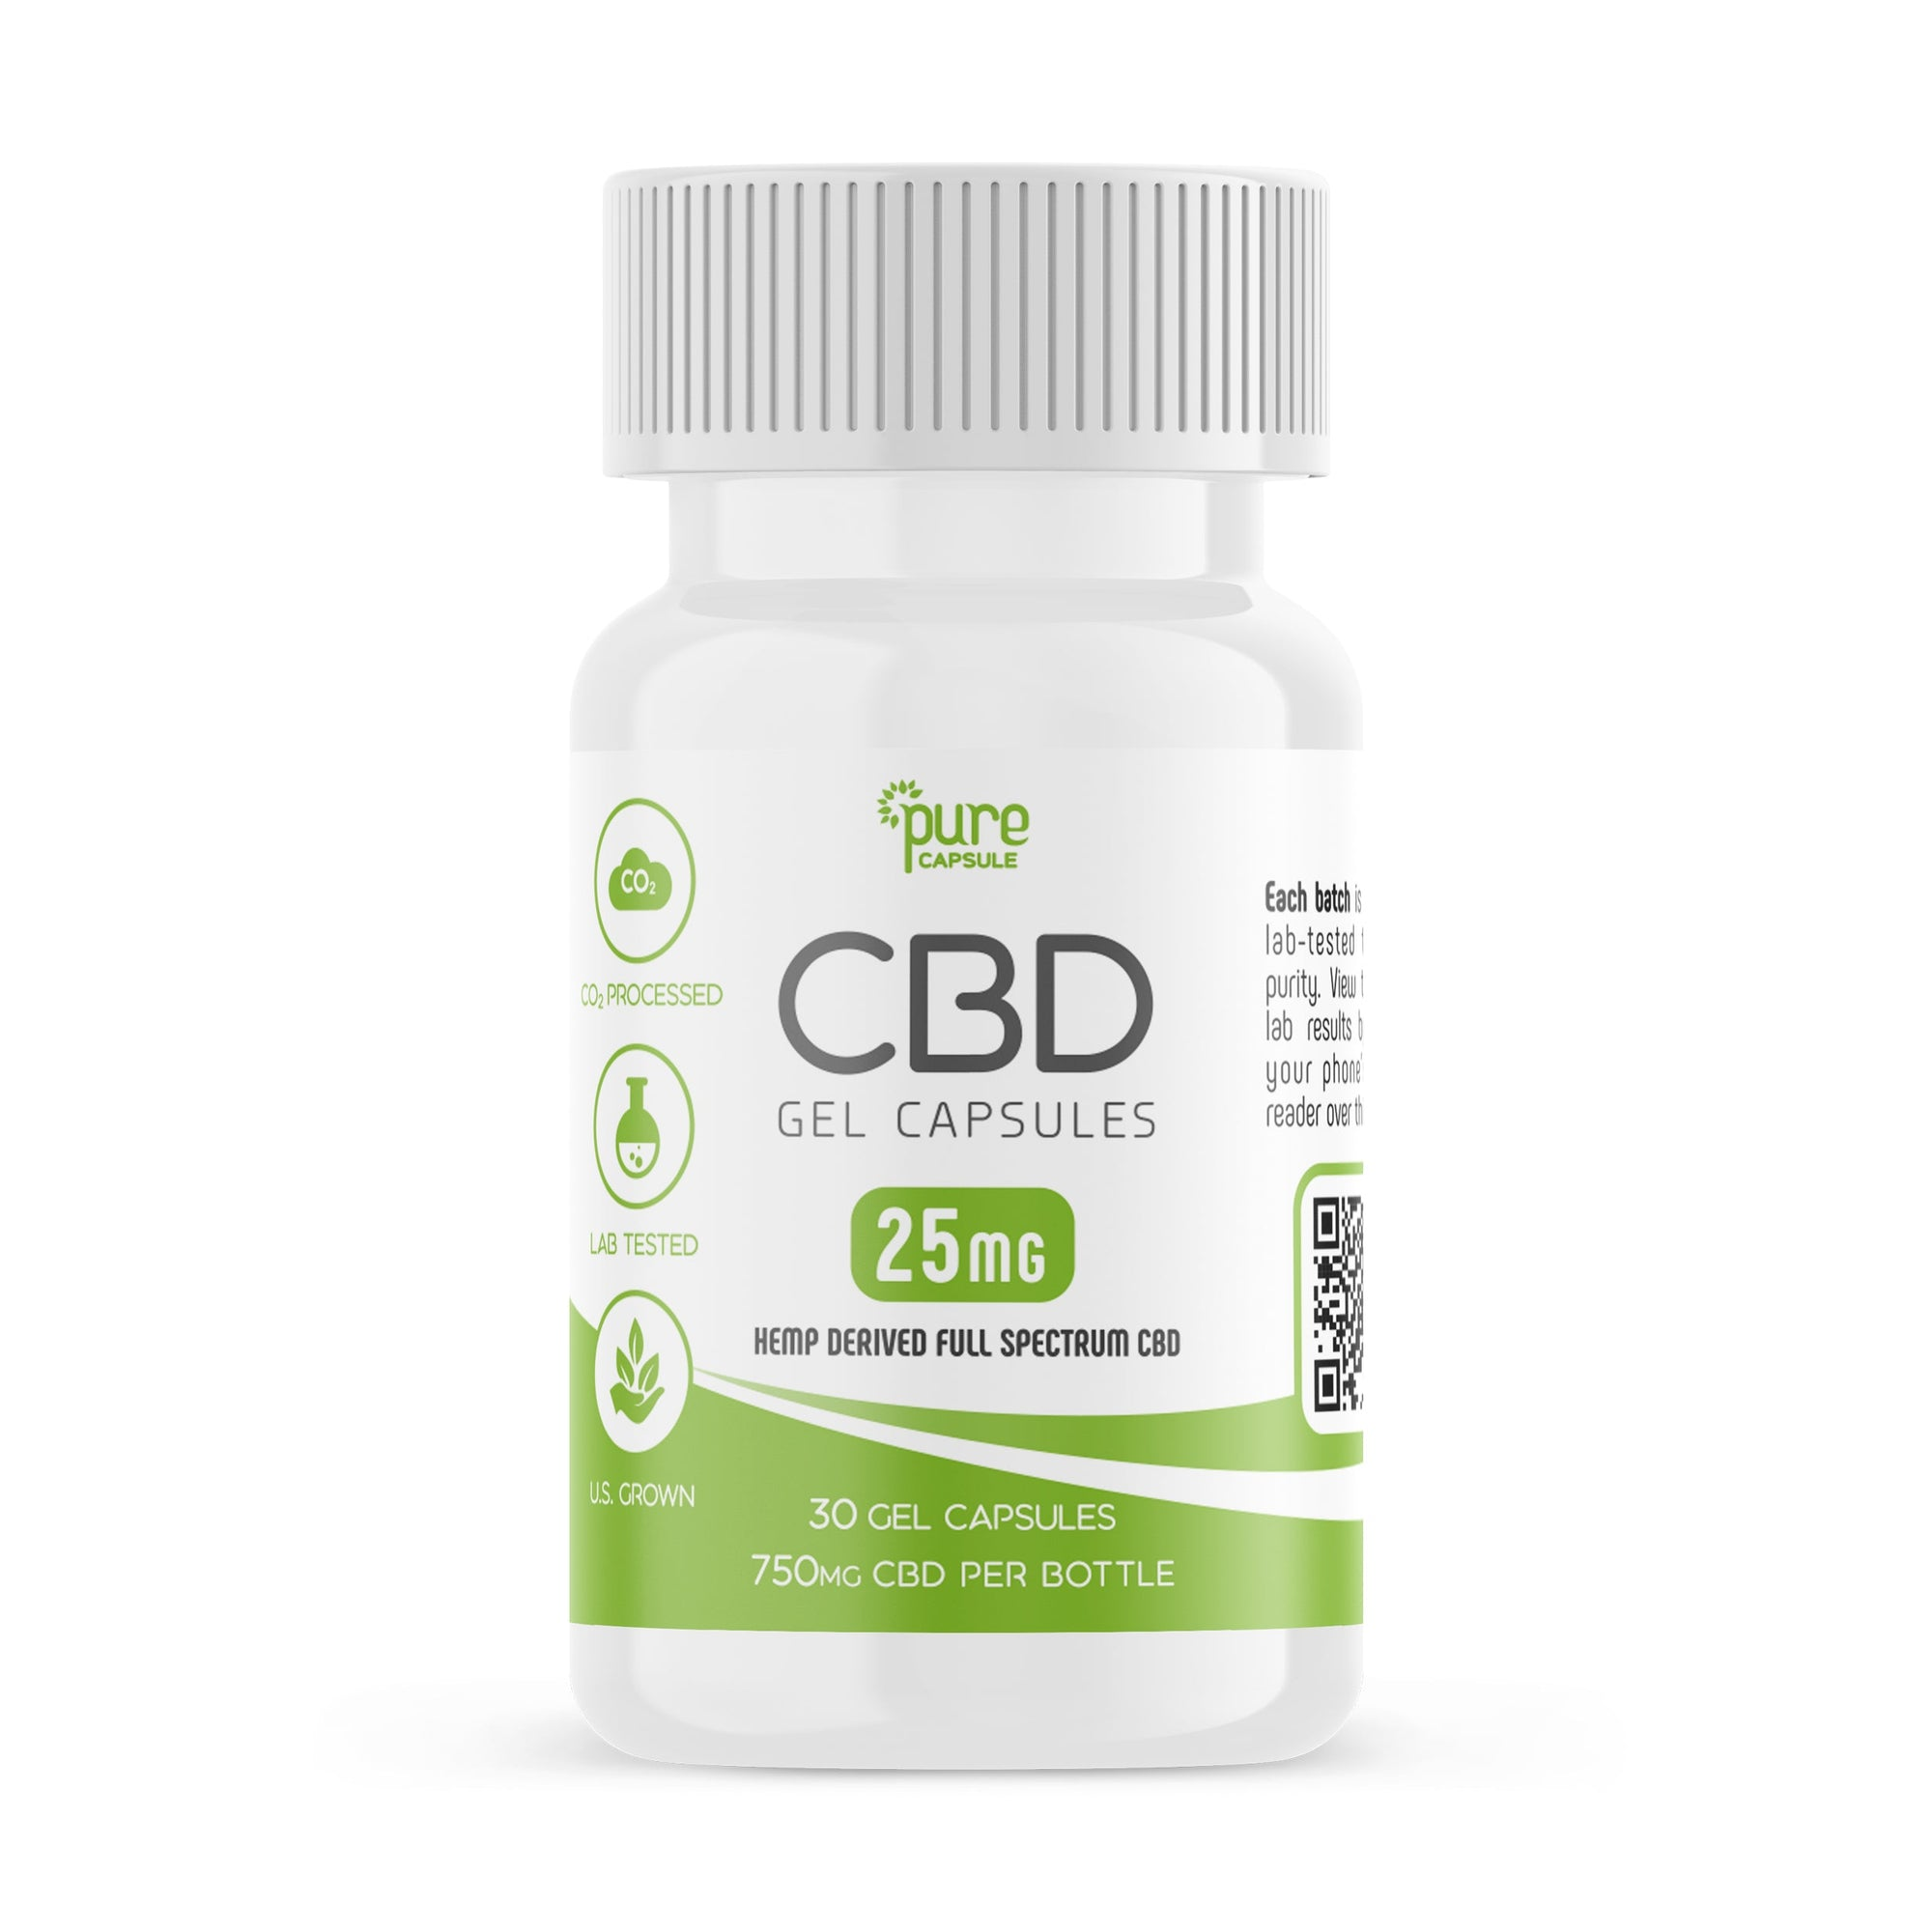 Full Spectrum CBD Oil Gel Capsules - 30 Capsules - 25 mg Per Capsule